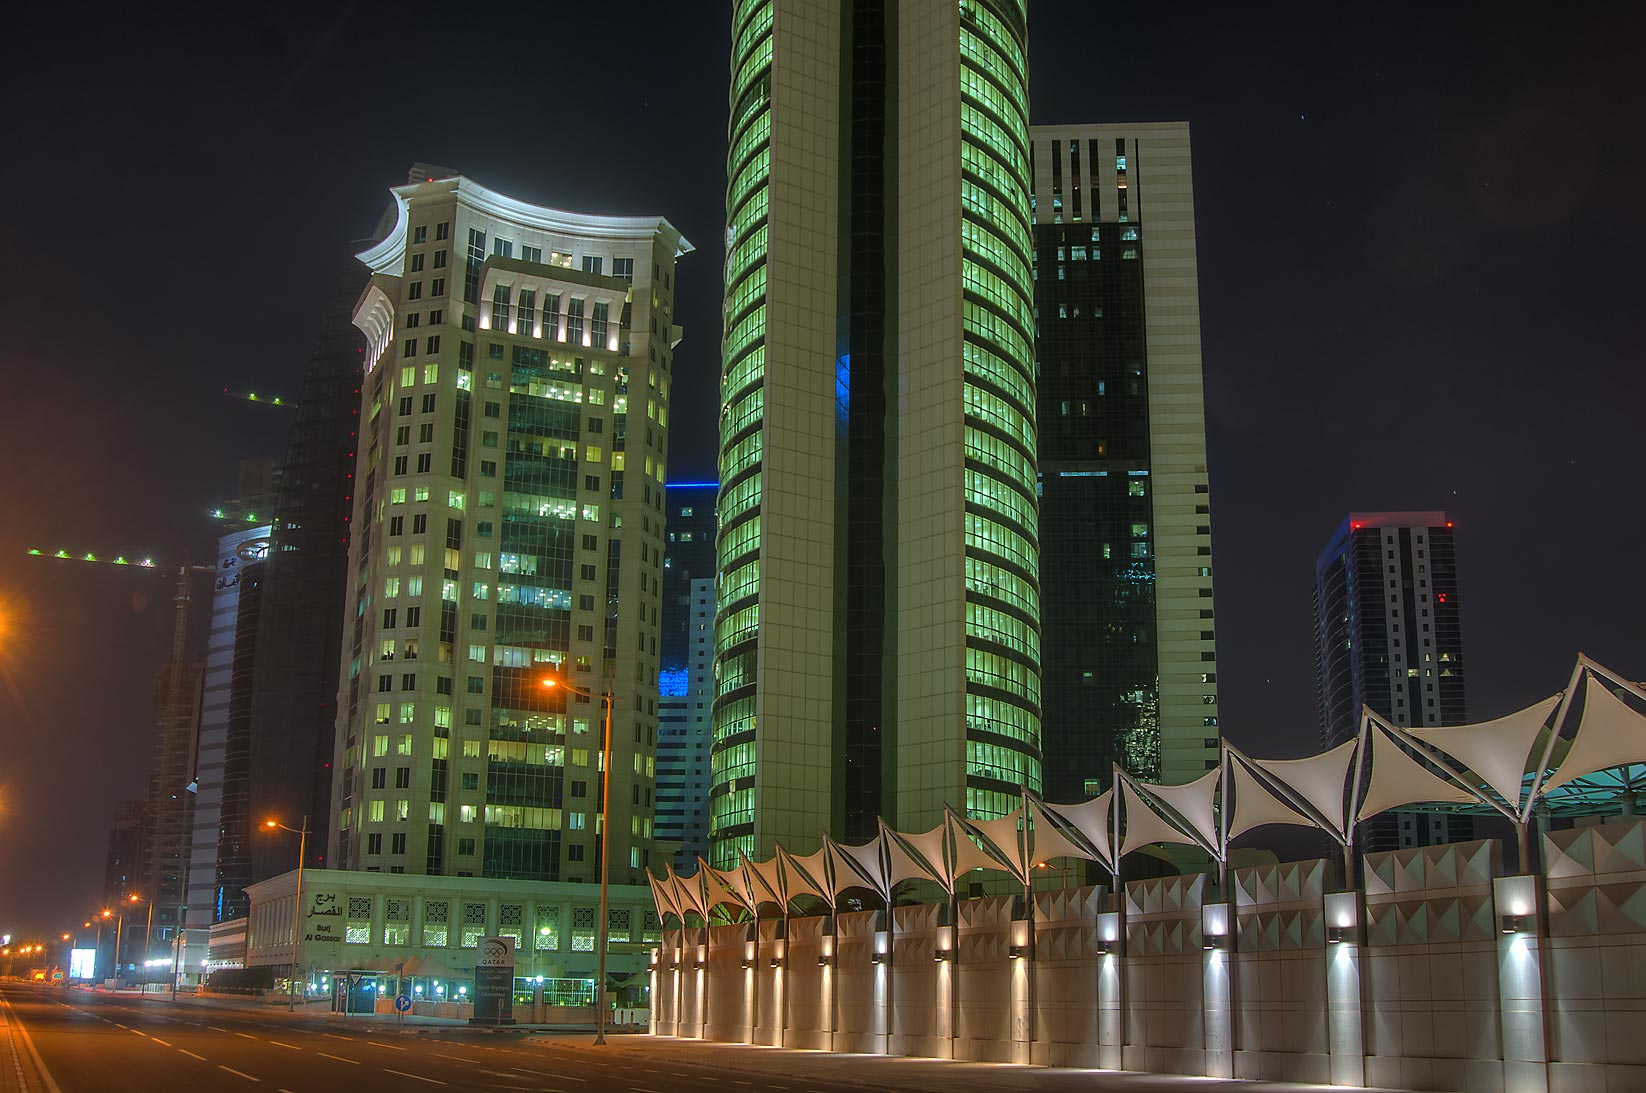 Al Qassar and Olympic towers in West Bay. Doha, Qatar